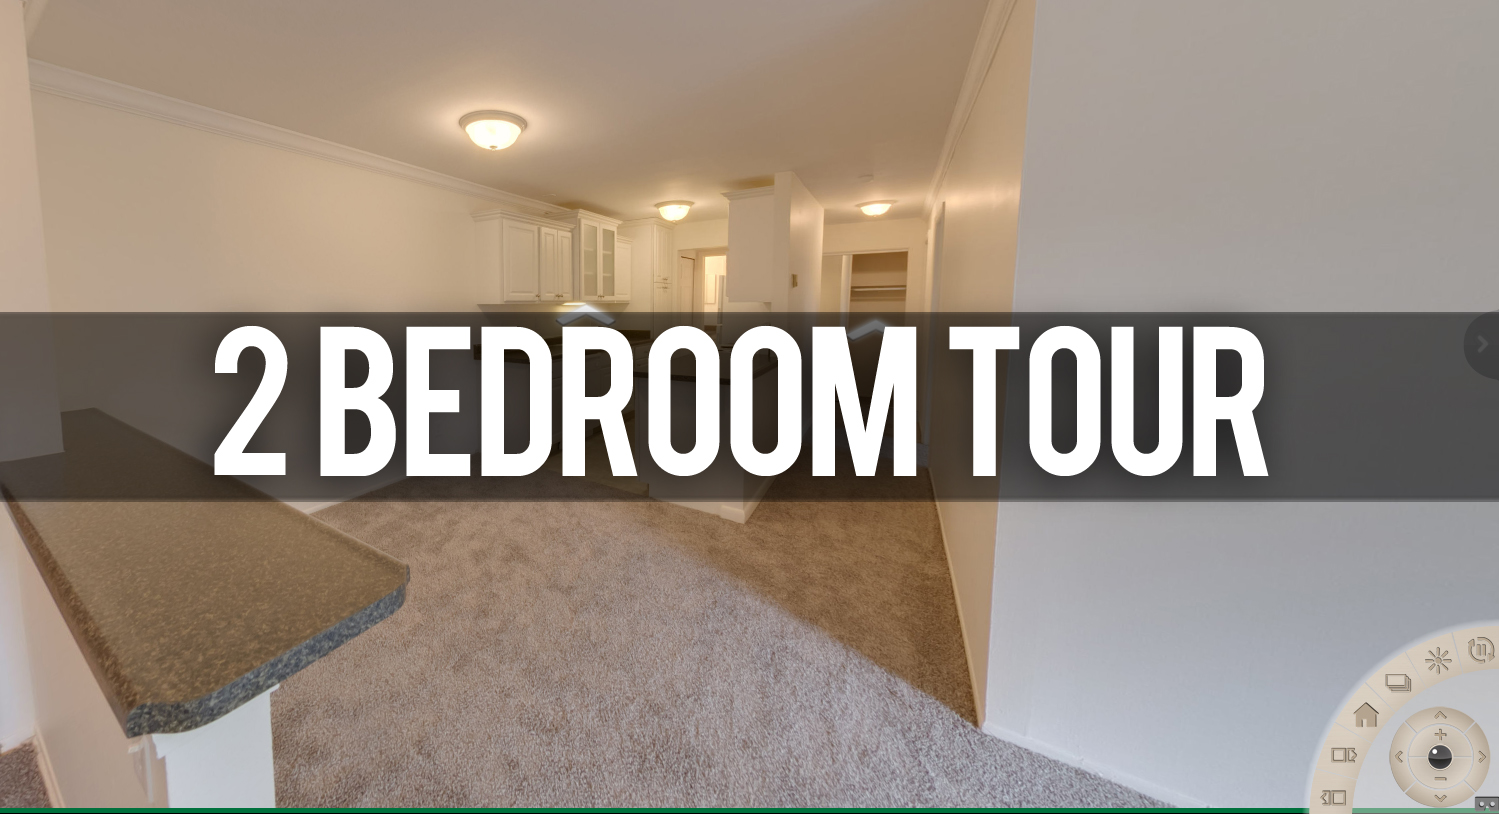 Virtual Tour 2 Bedroom Apartment at Berrytree Apartments in Okemos, MI